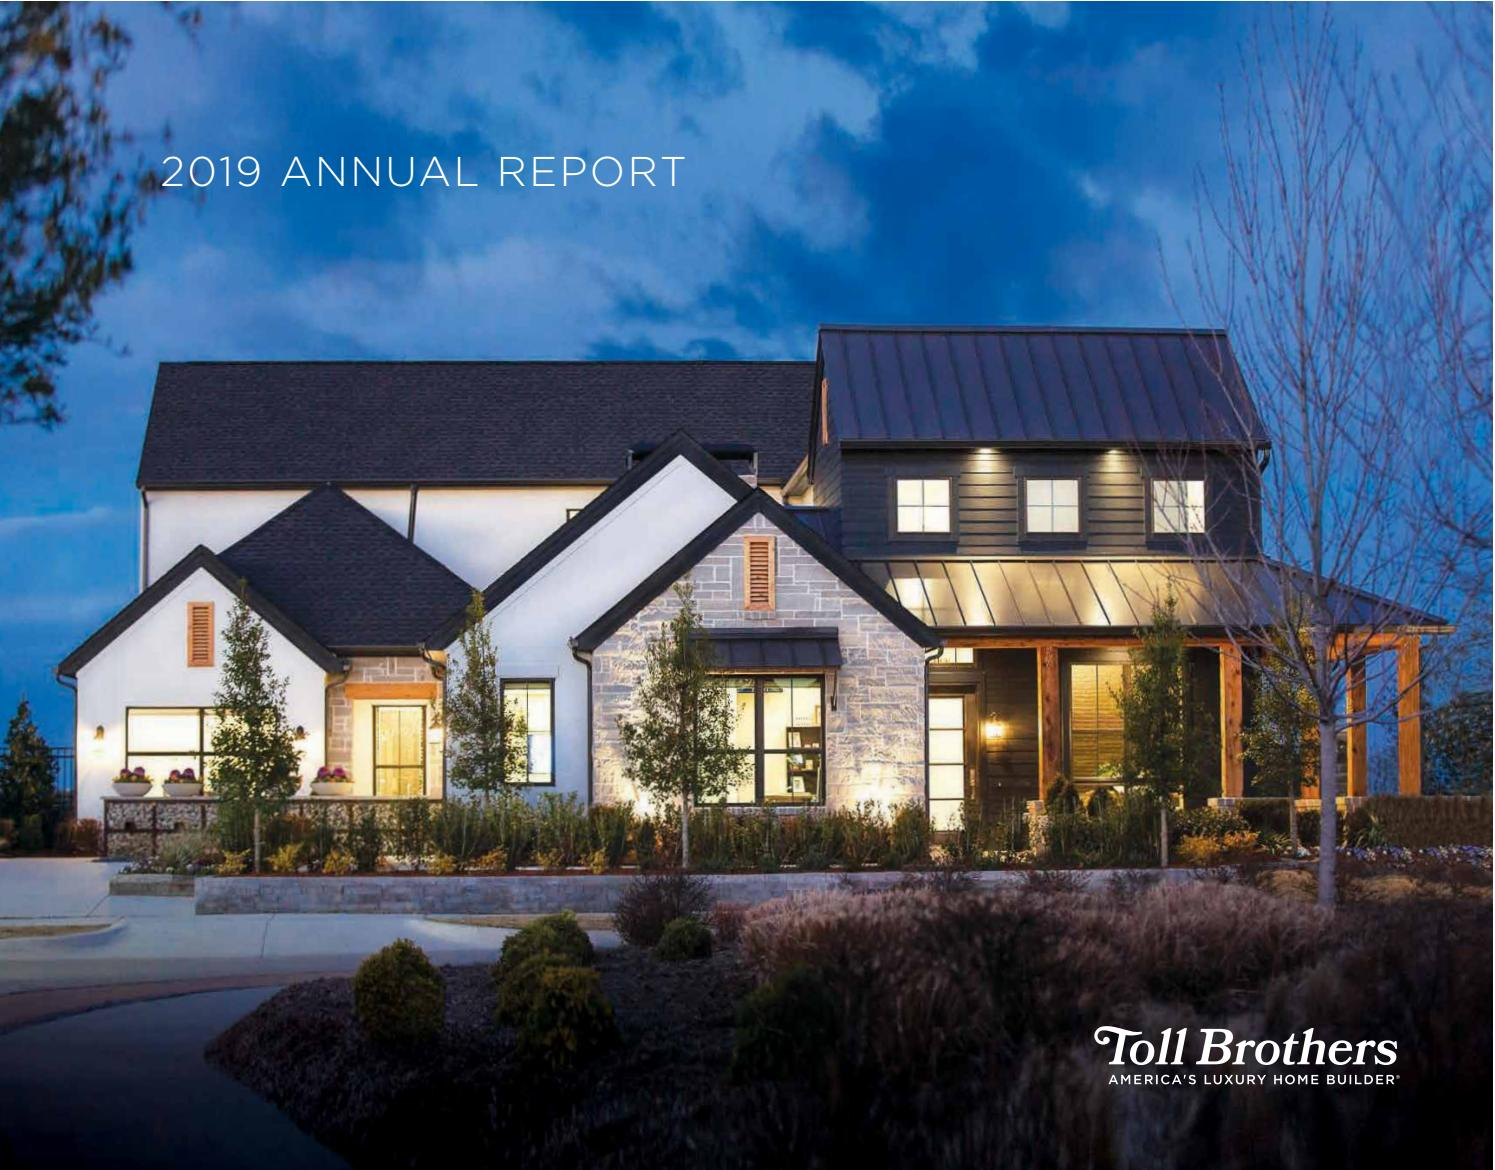 2019 Annual Report By Toll Brothers Inc Issuu